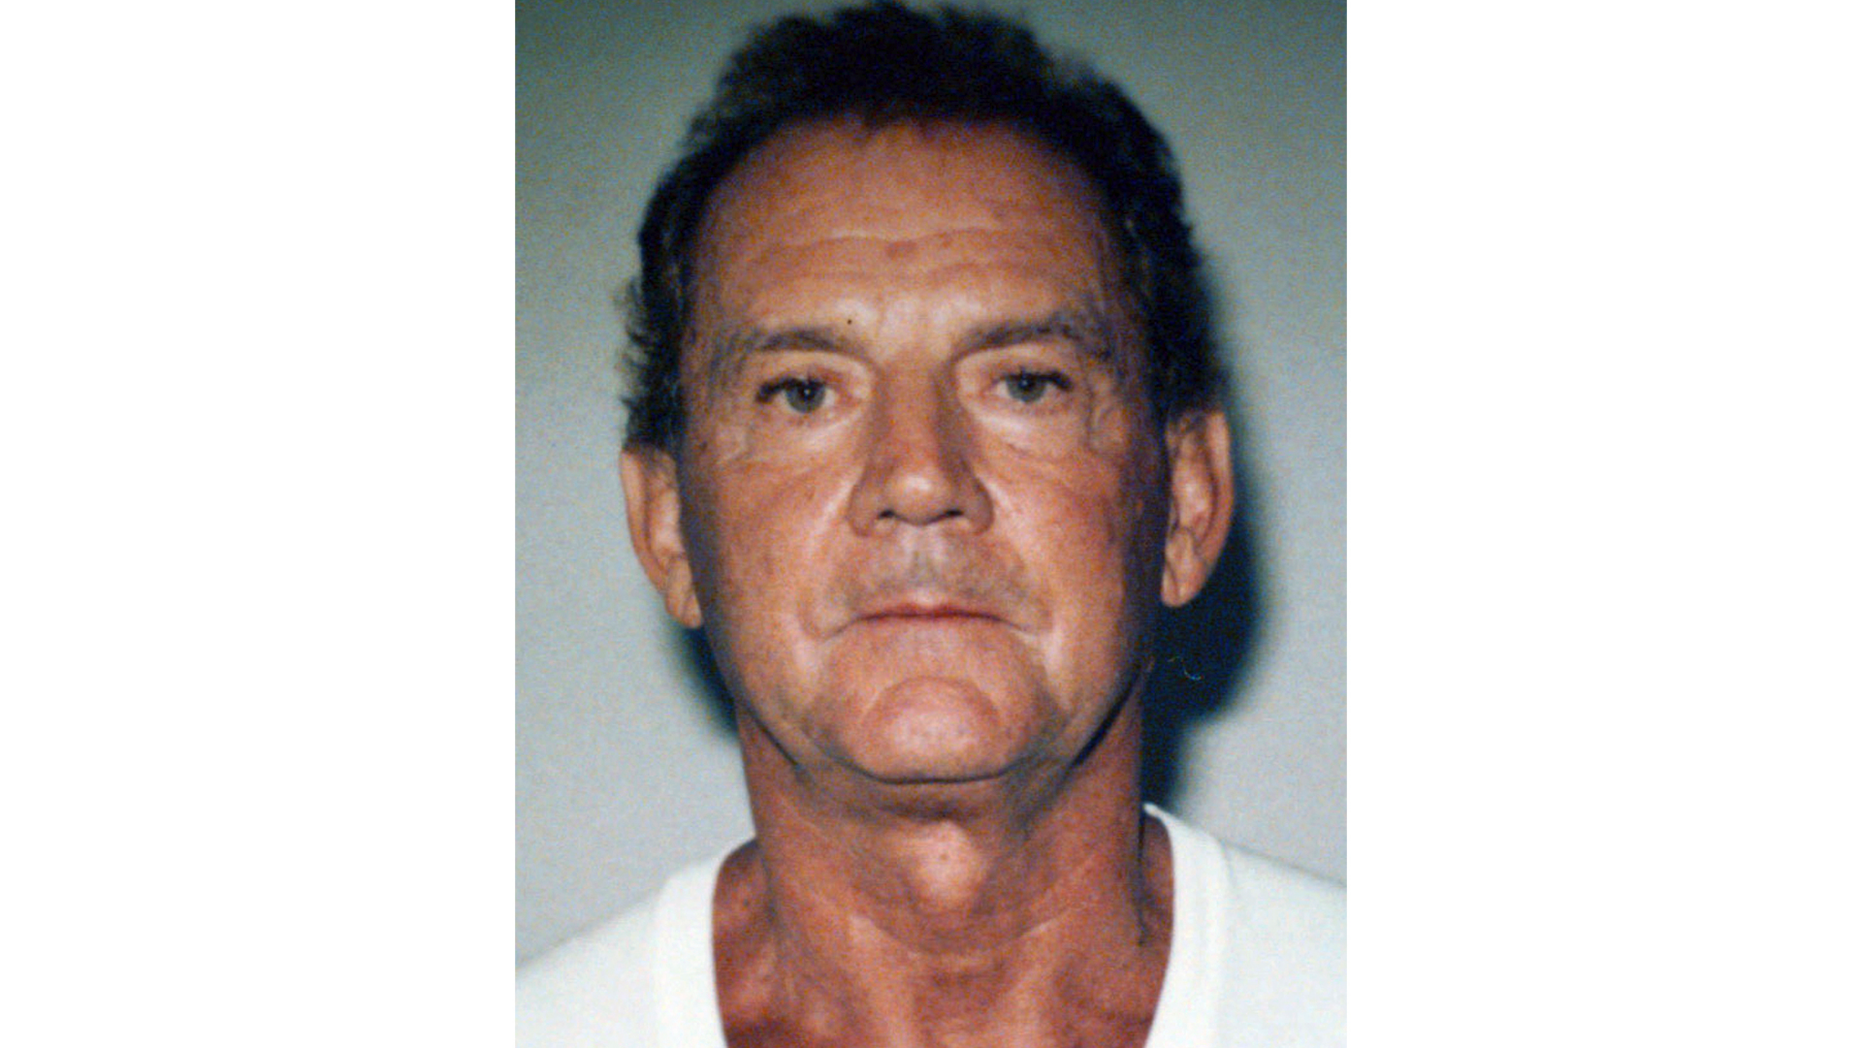 http://a57.foxnews.com/images.foxnews.com/content/fox-news/us/2018/09/13/ex-mafia-boss-cadillac-frank-sentenced-to-life-in-prison/_jcr_content/par/featured-media/media-0.img.png/1862/1048/1536867460871.png?ve=1&tl=1